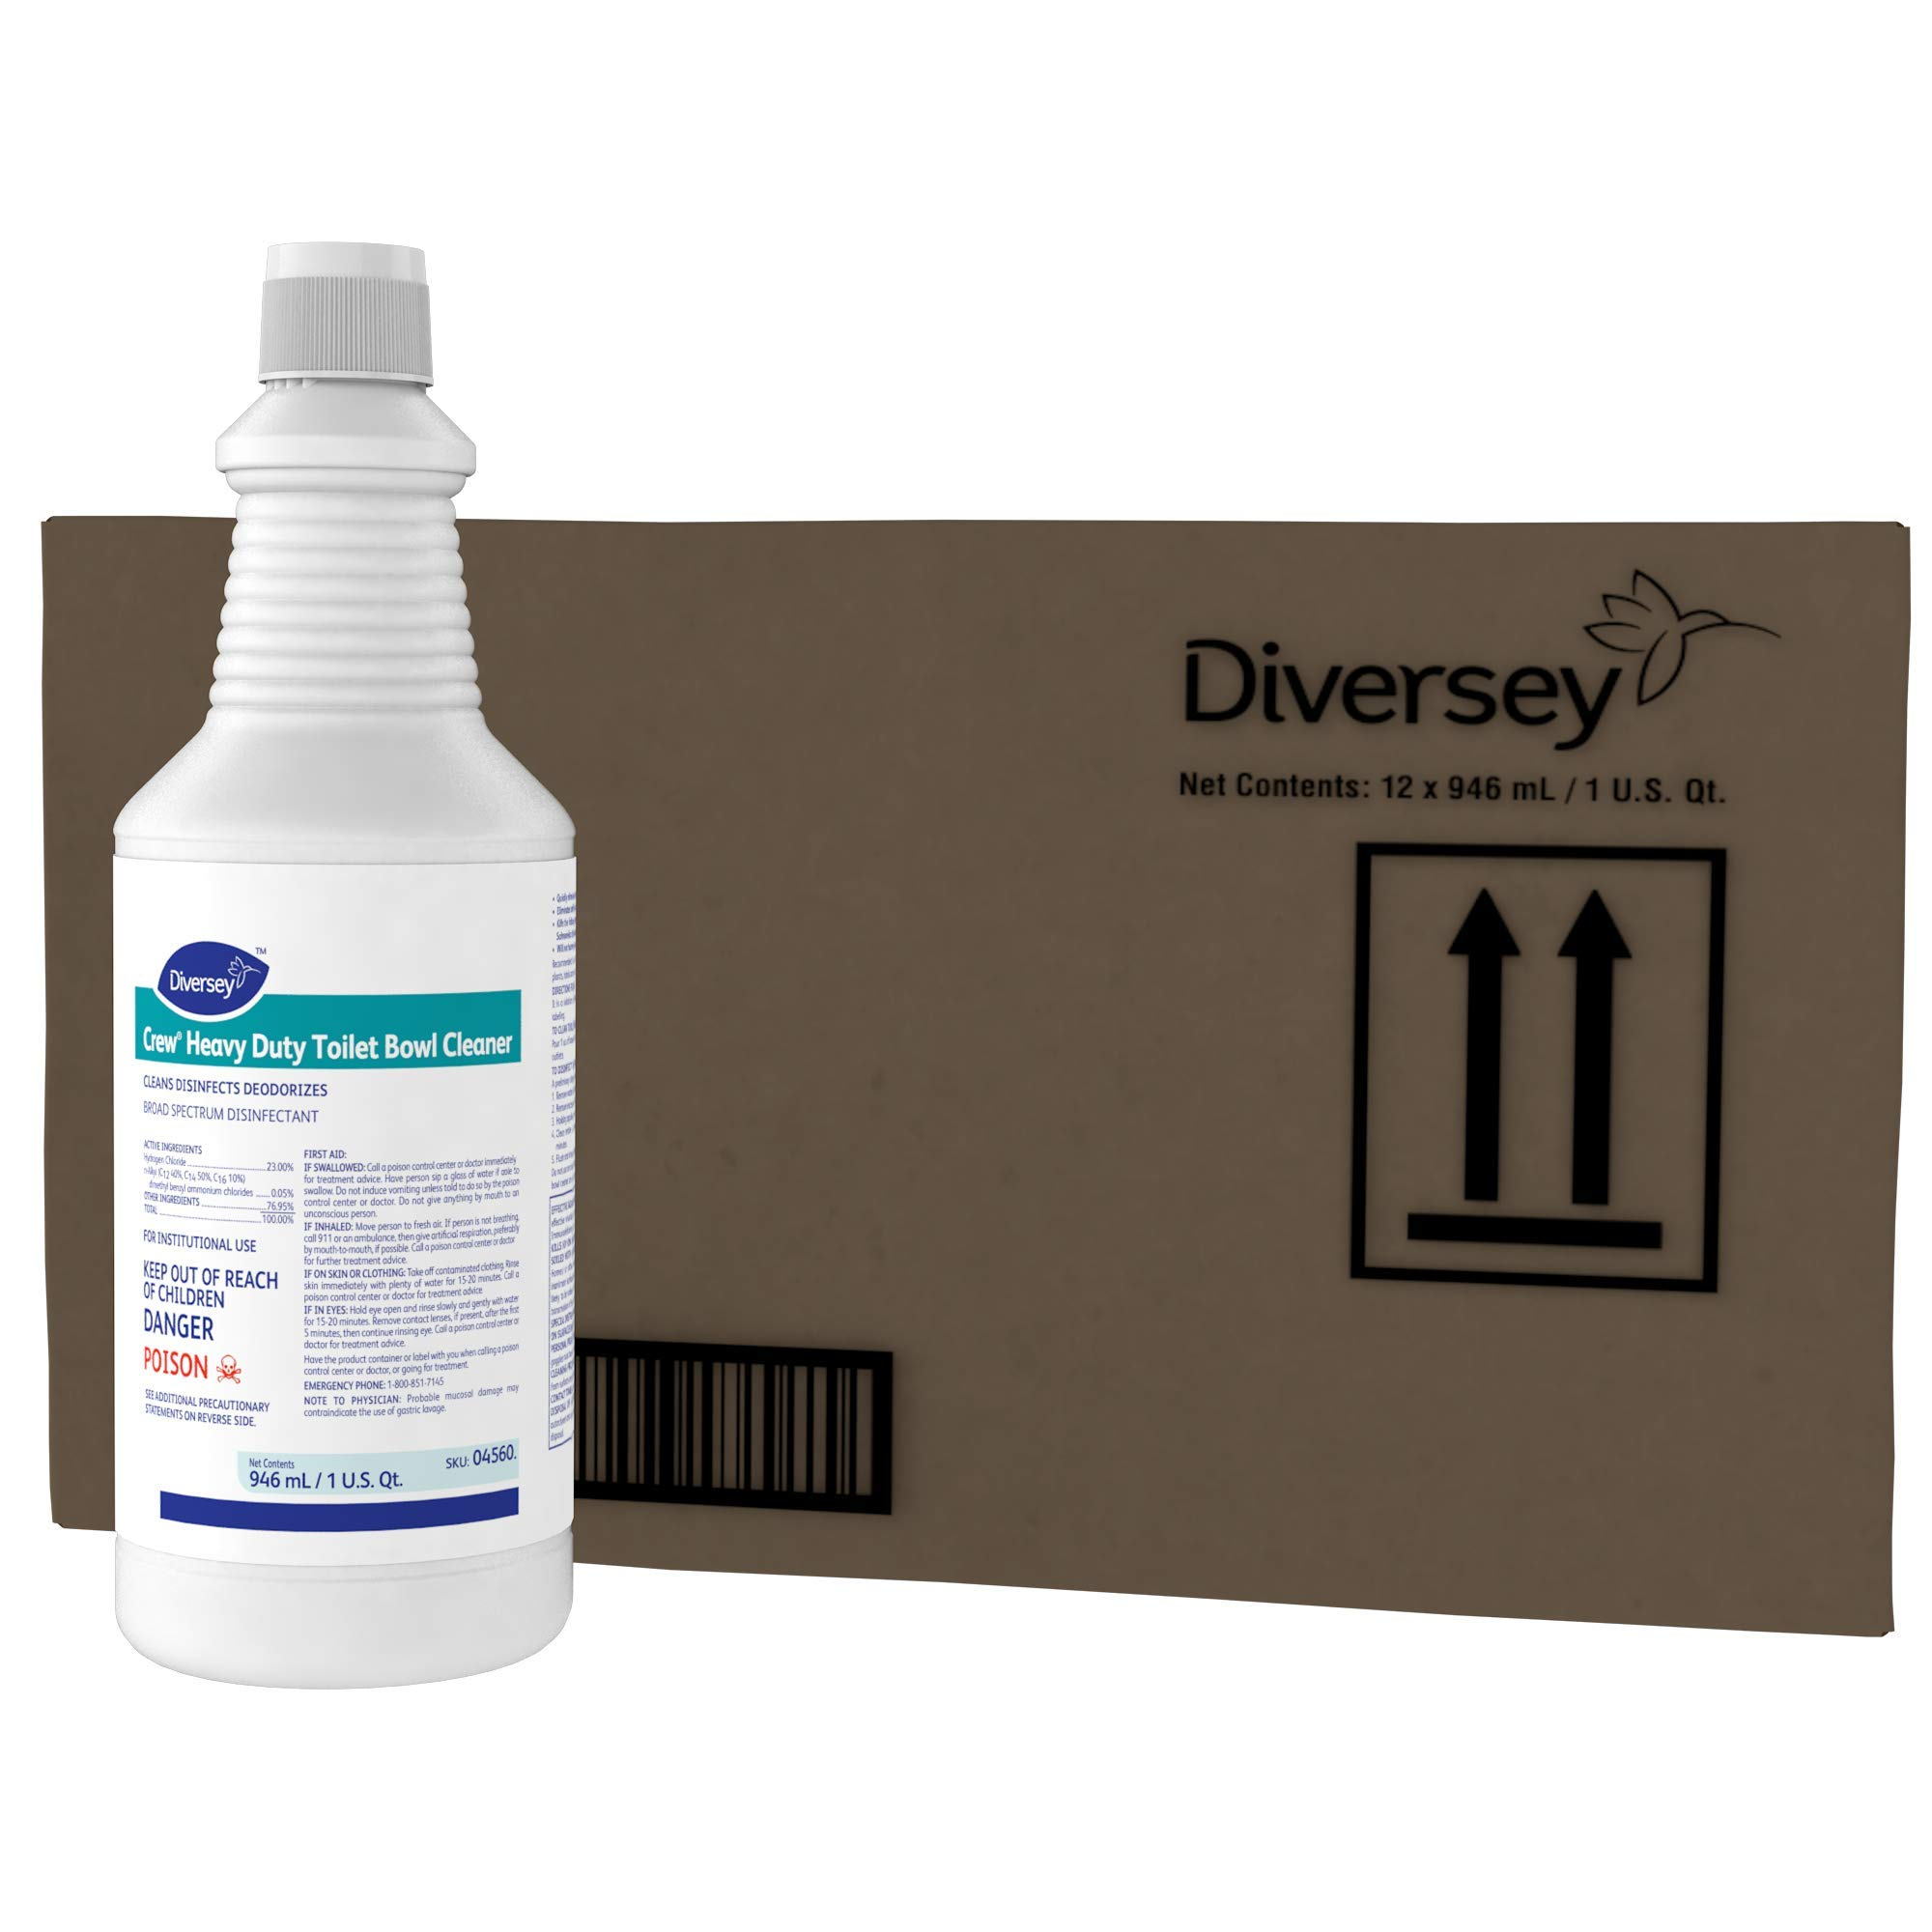 Diversey Crew Heavy Duty Toilet Bowl Cleaner - 12 Pack - Perfect for eliminating Offensive Odors, Rust, gunk, and Lime Scale (32 oz Bottle) by Diversey (Image #2)